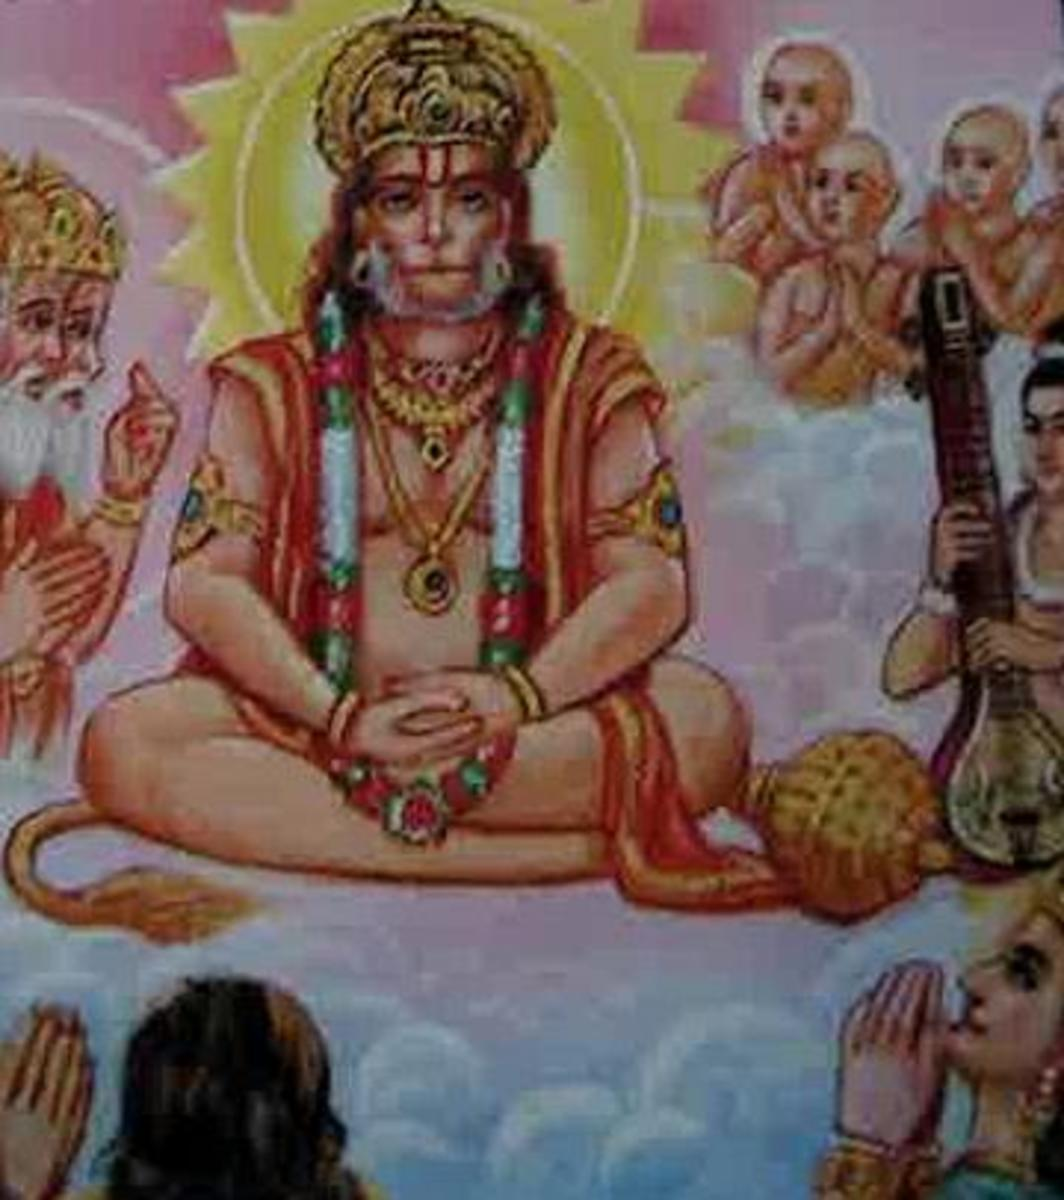 Picture depicting verse 16 of the Hanuman Chalisa